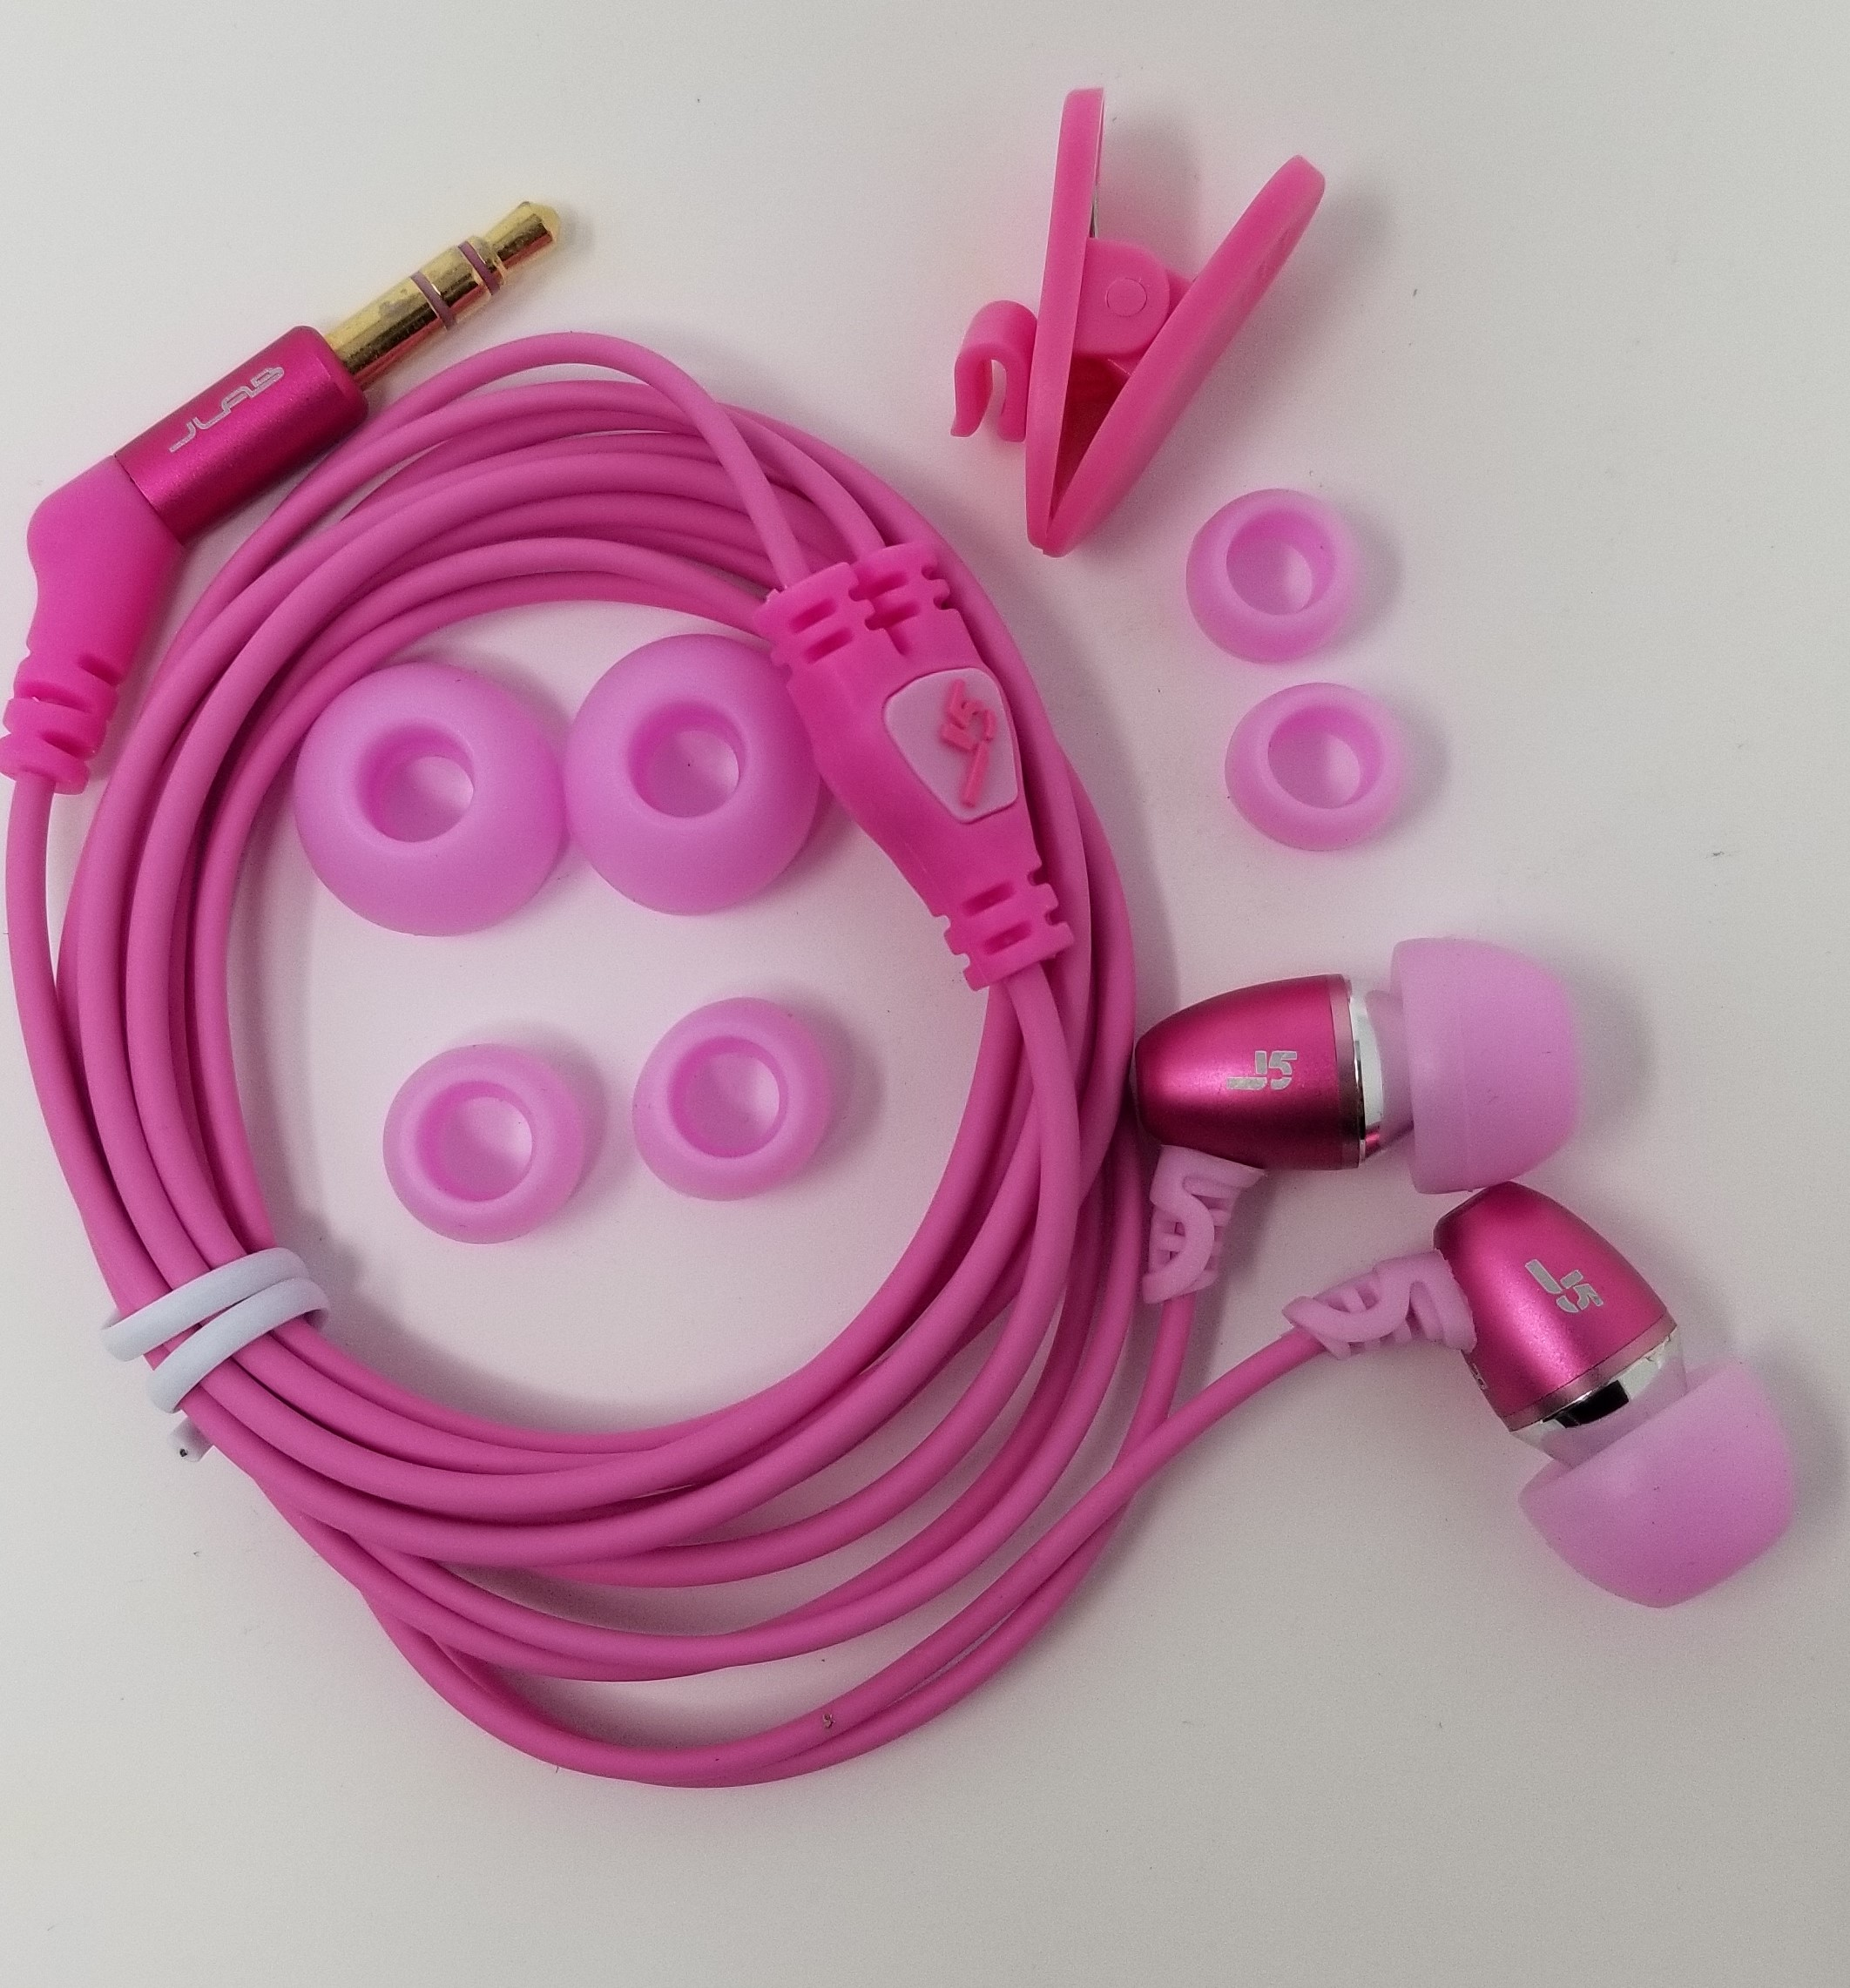 Jlab J5 Hi-Fi Noise Reducing Earbuds Pink